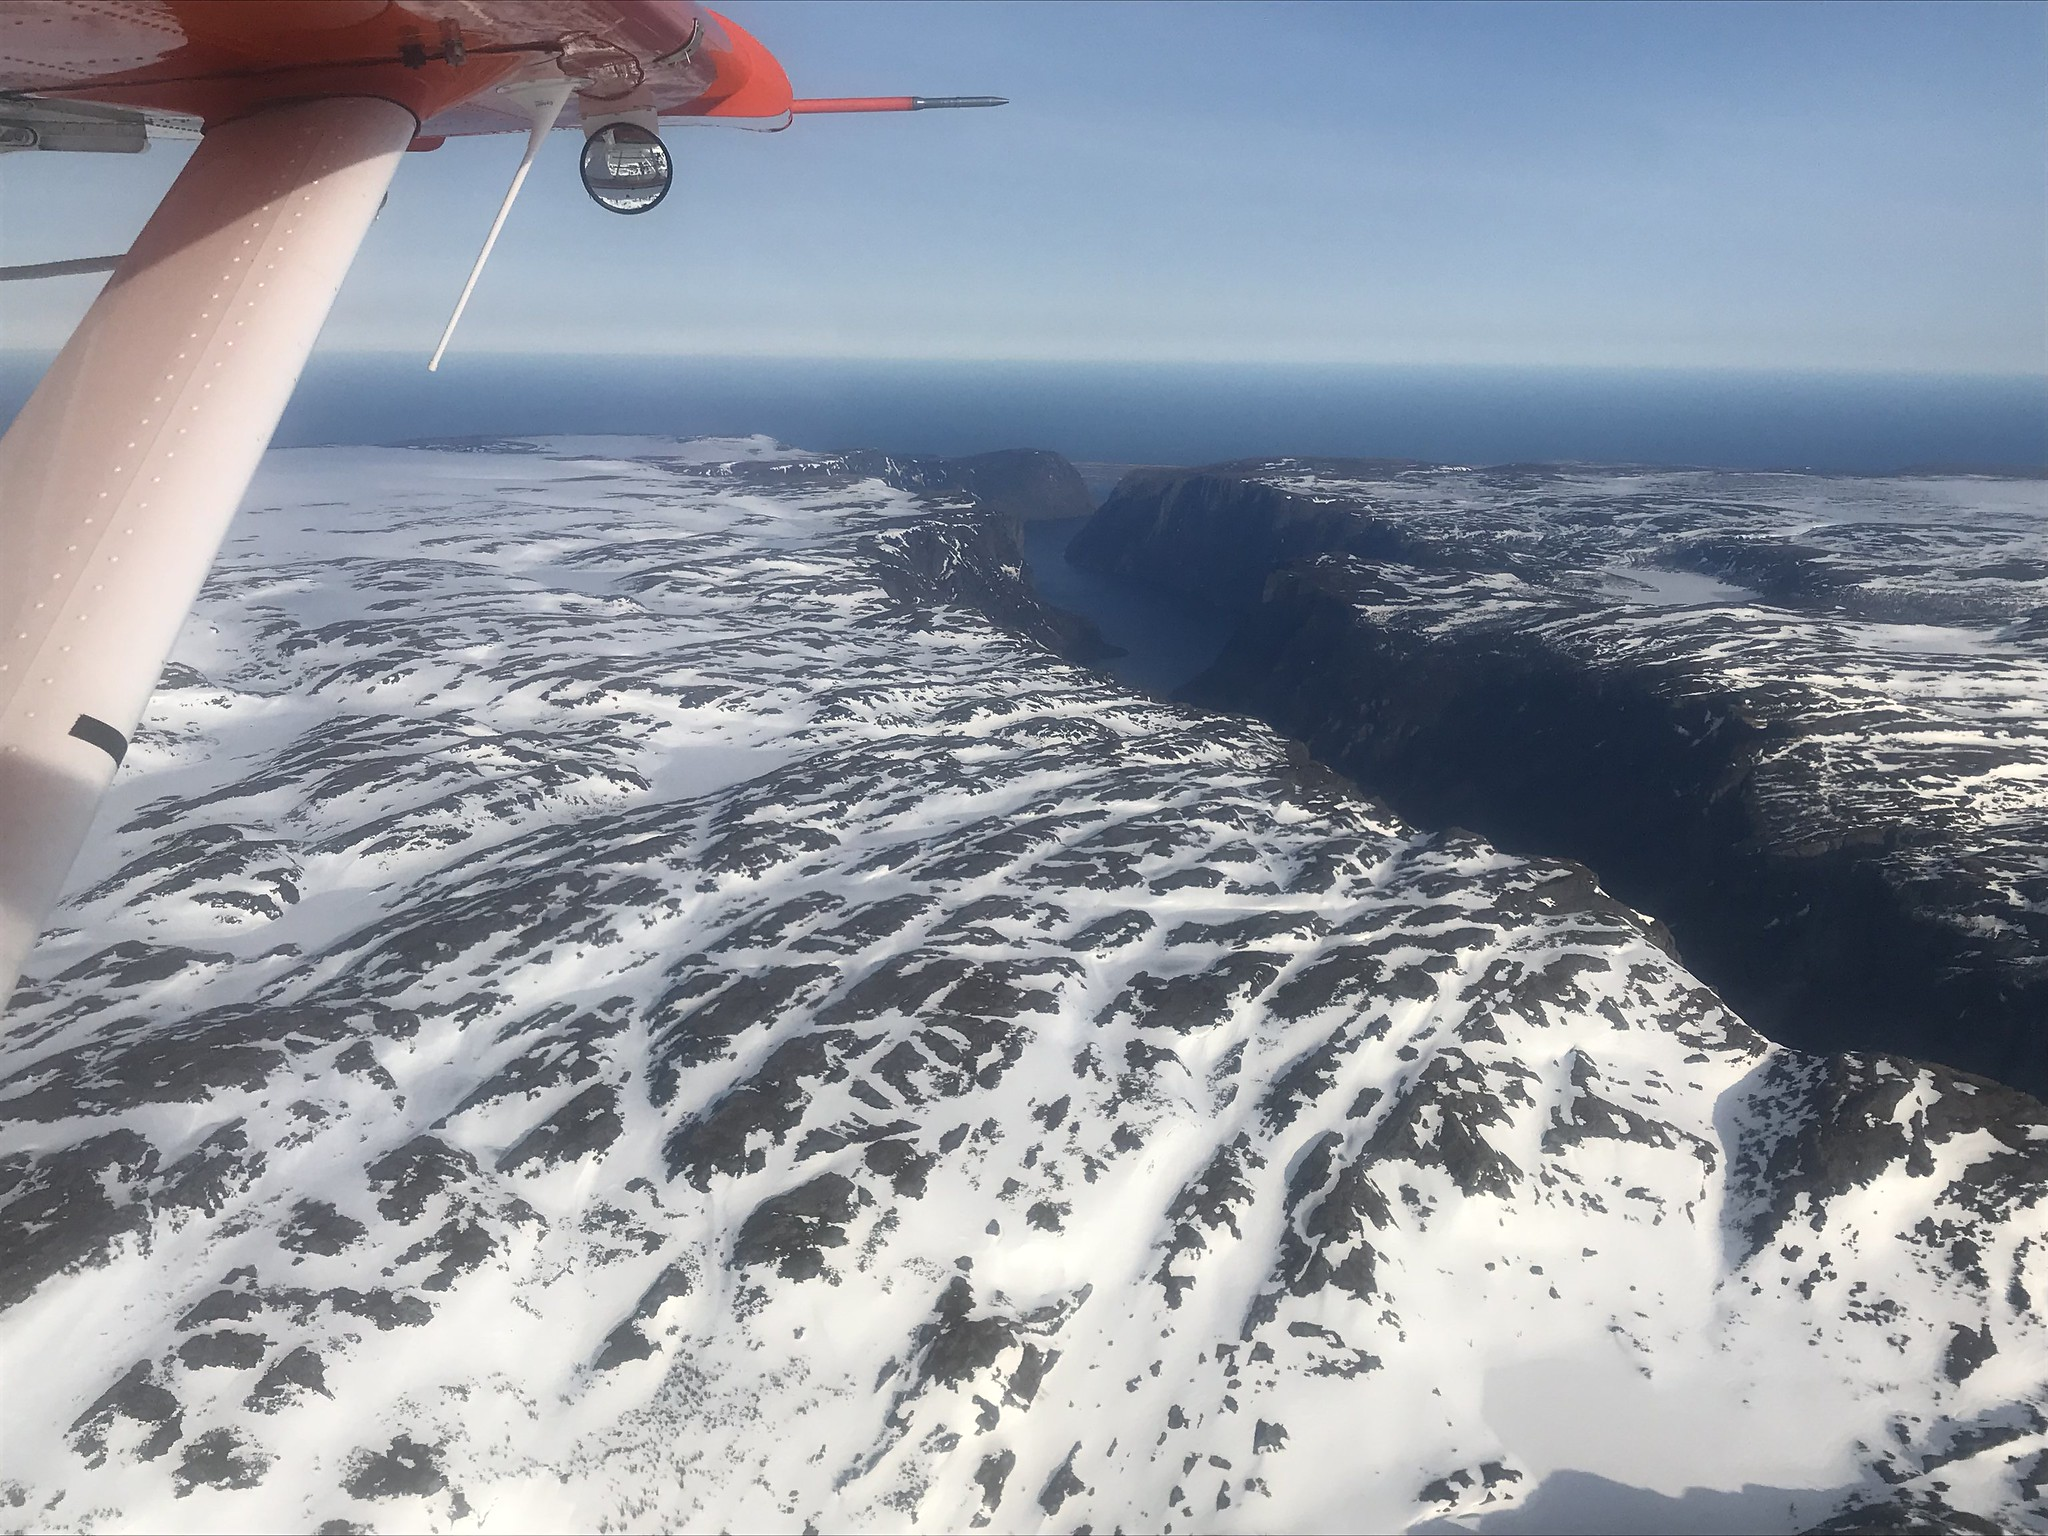 Western Brook Pond landlocked fjord, Newfoundland, May 2018 Photo Credit: USFWS